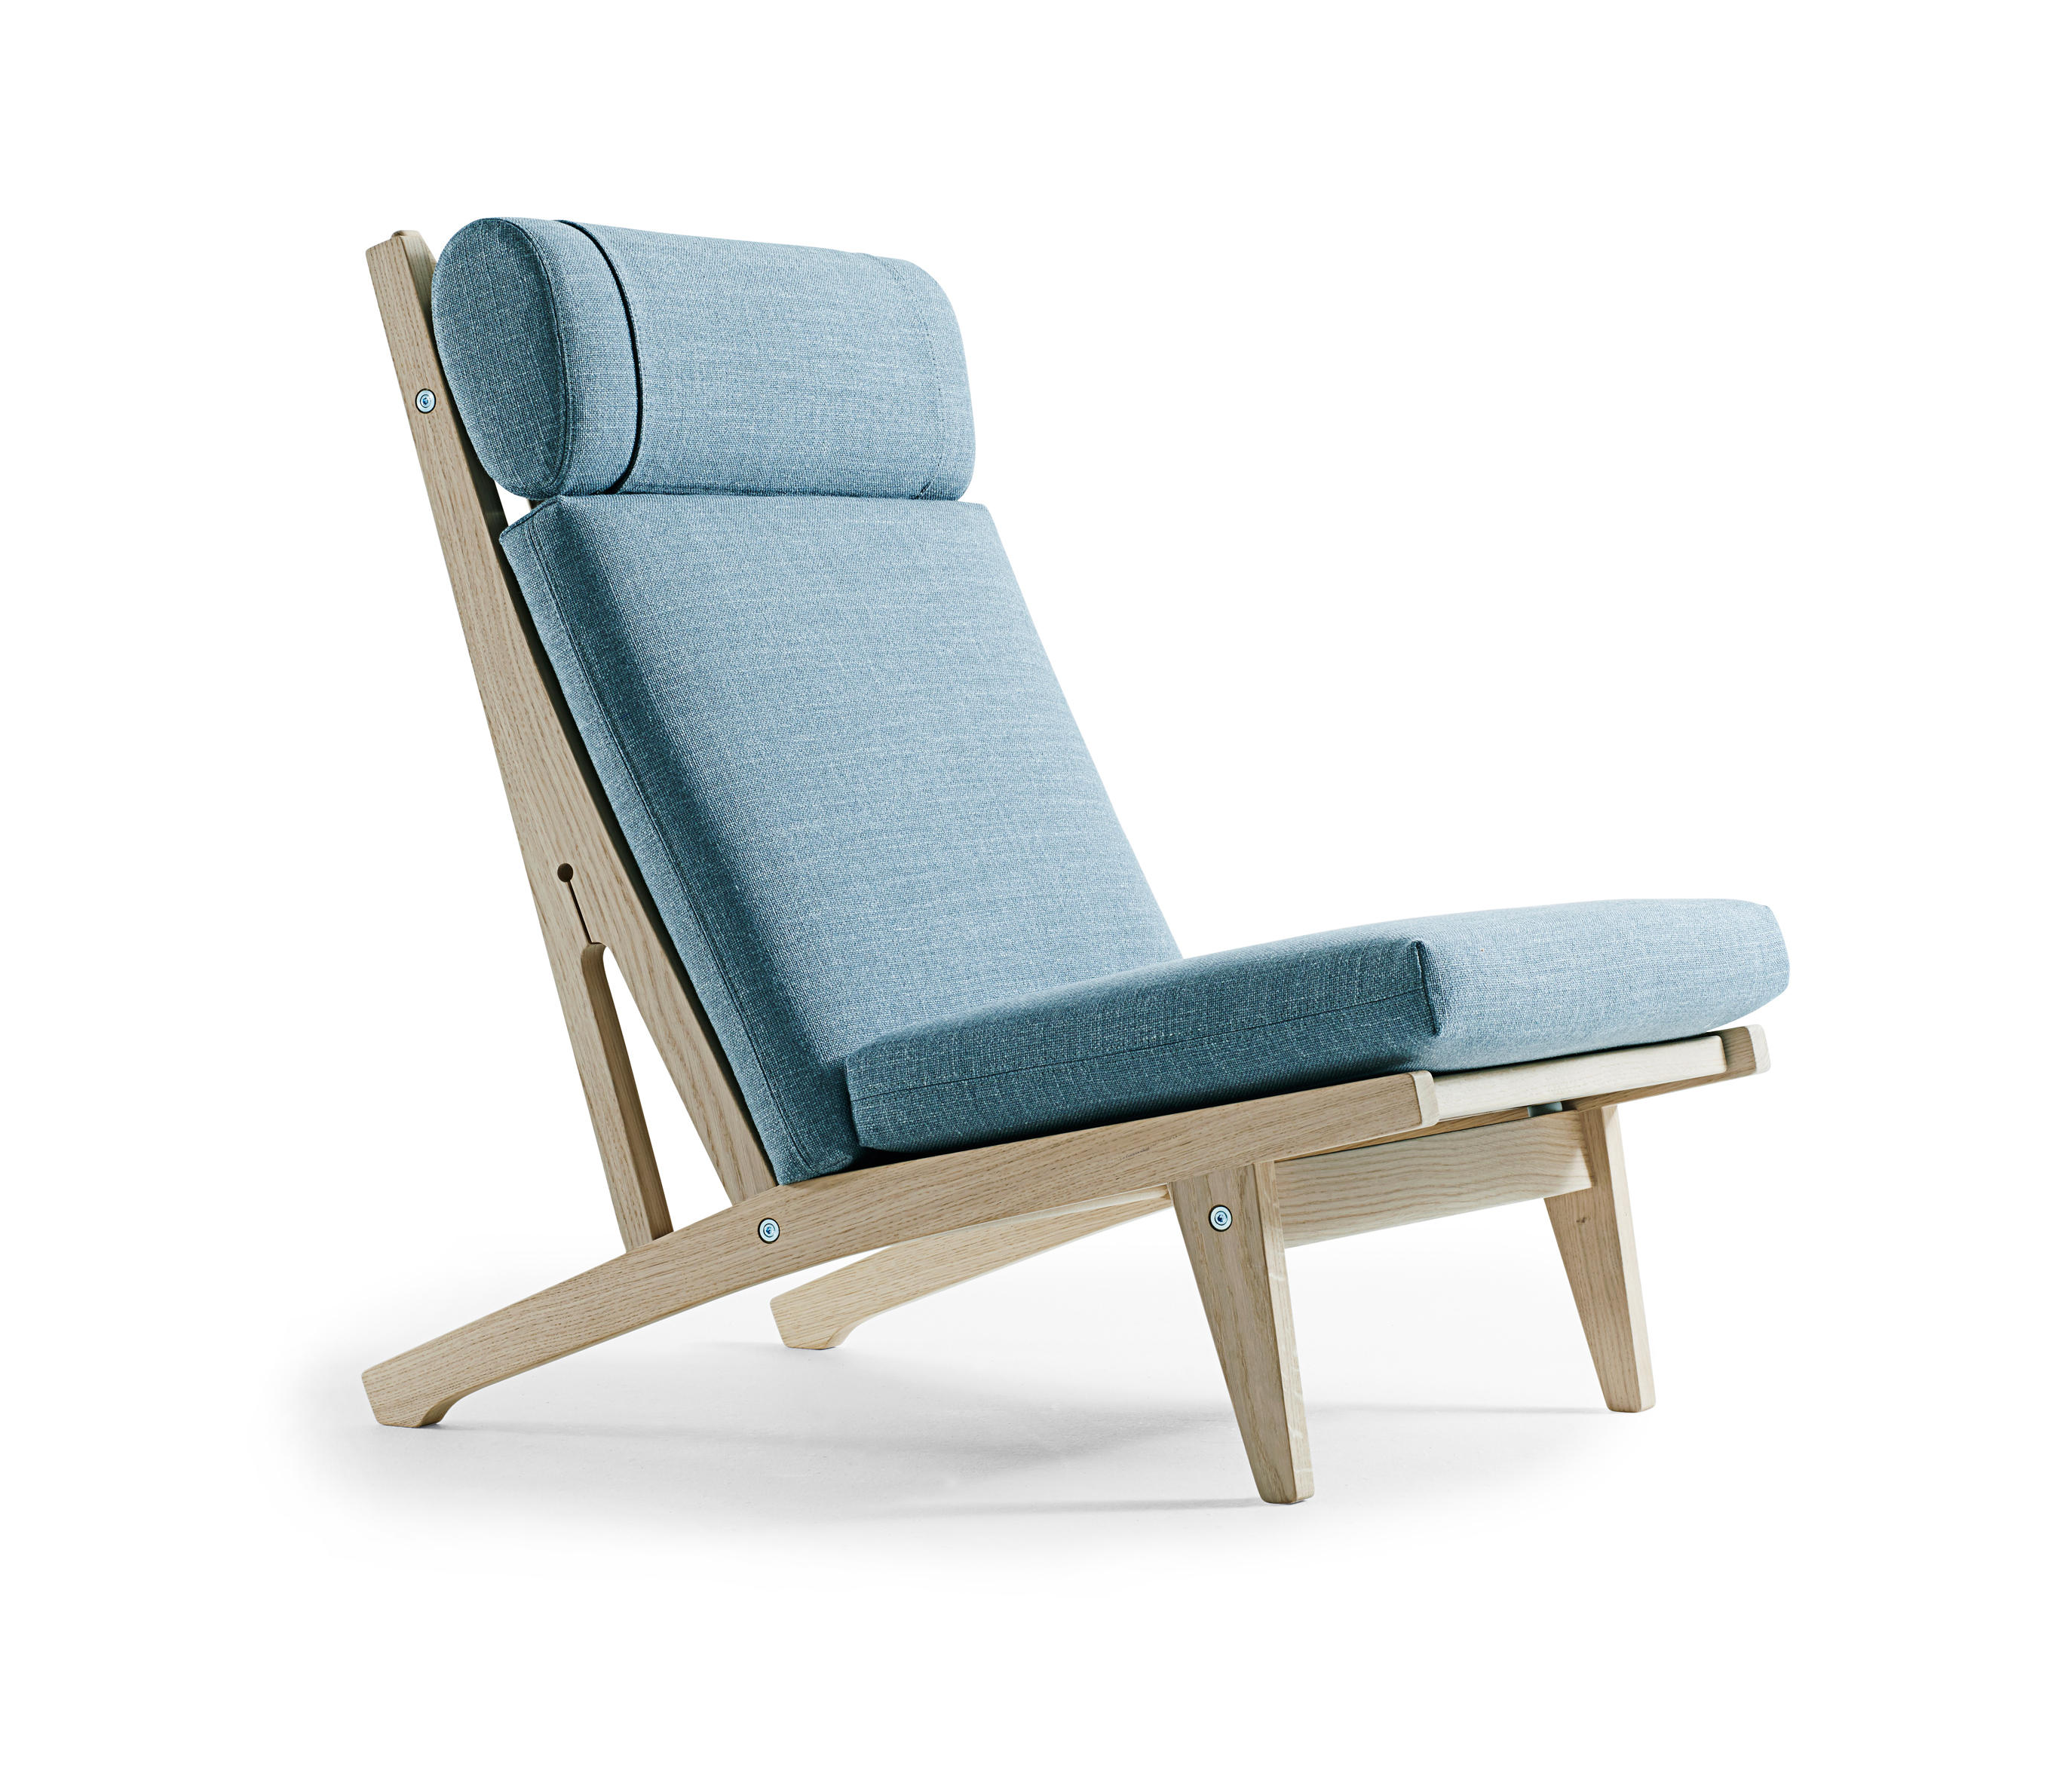 Best Easy Chair For Back Buy The Swedese Primo Easy Chair High Back At Nest Co Uk, Set Of Two